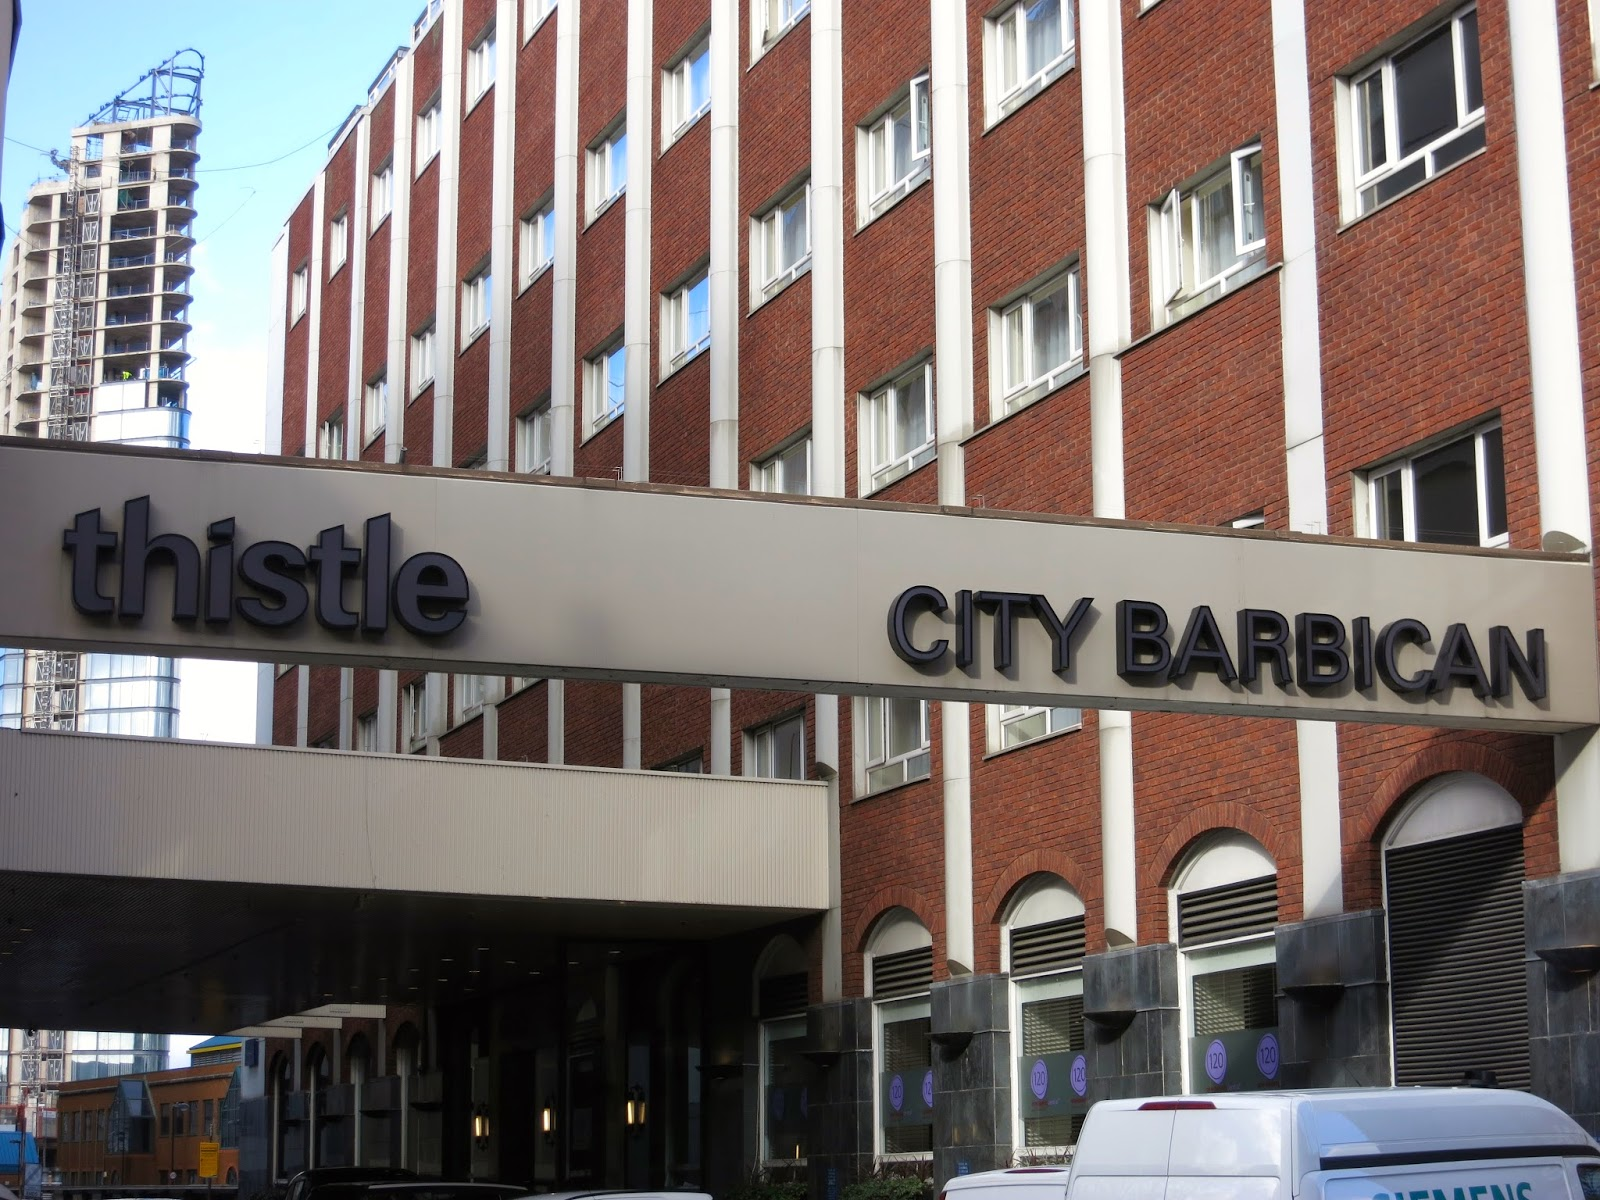 thistle hotel barbican